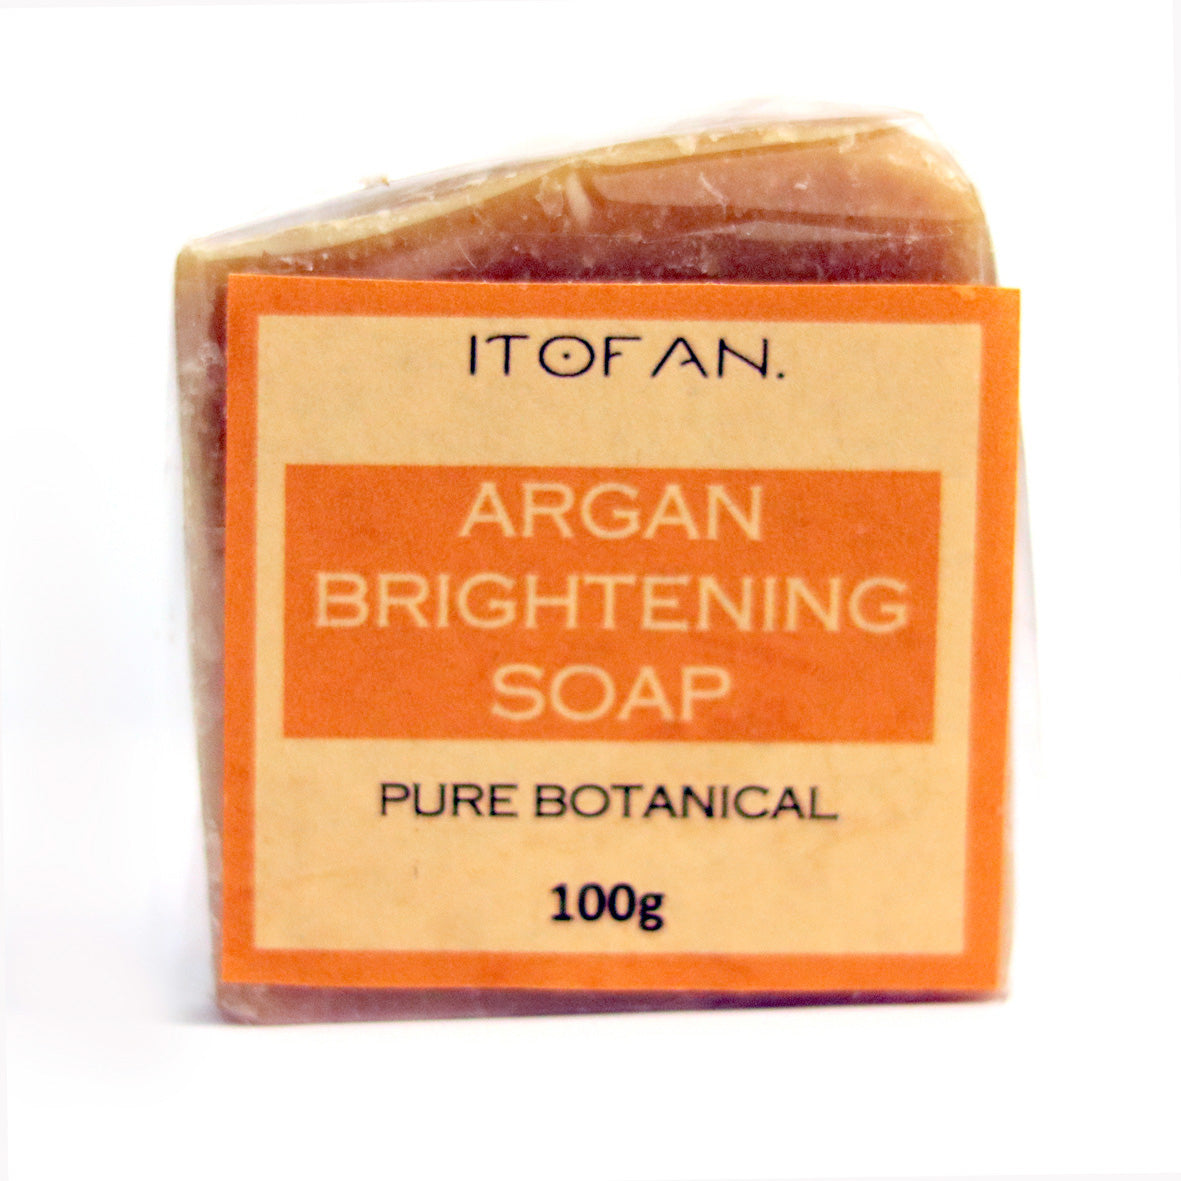 BRIGHTENING ARGAN SOAP